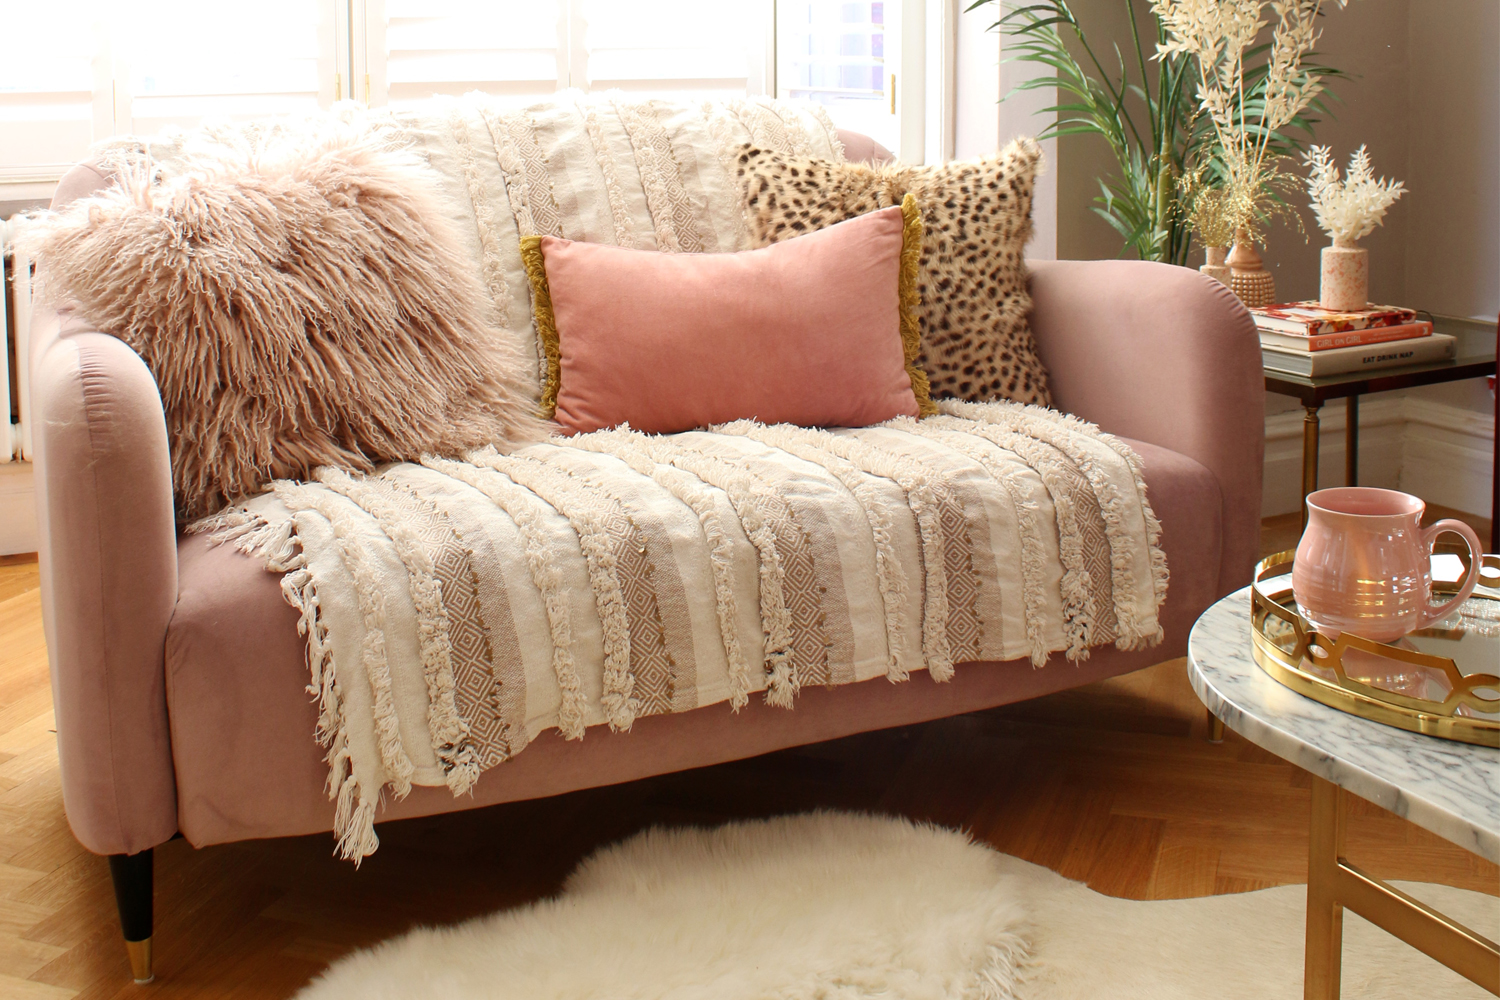 5 Ways To Style A Small Sofa - Swoon Worthy